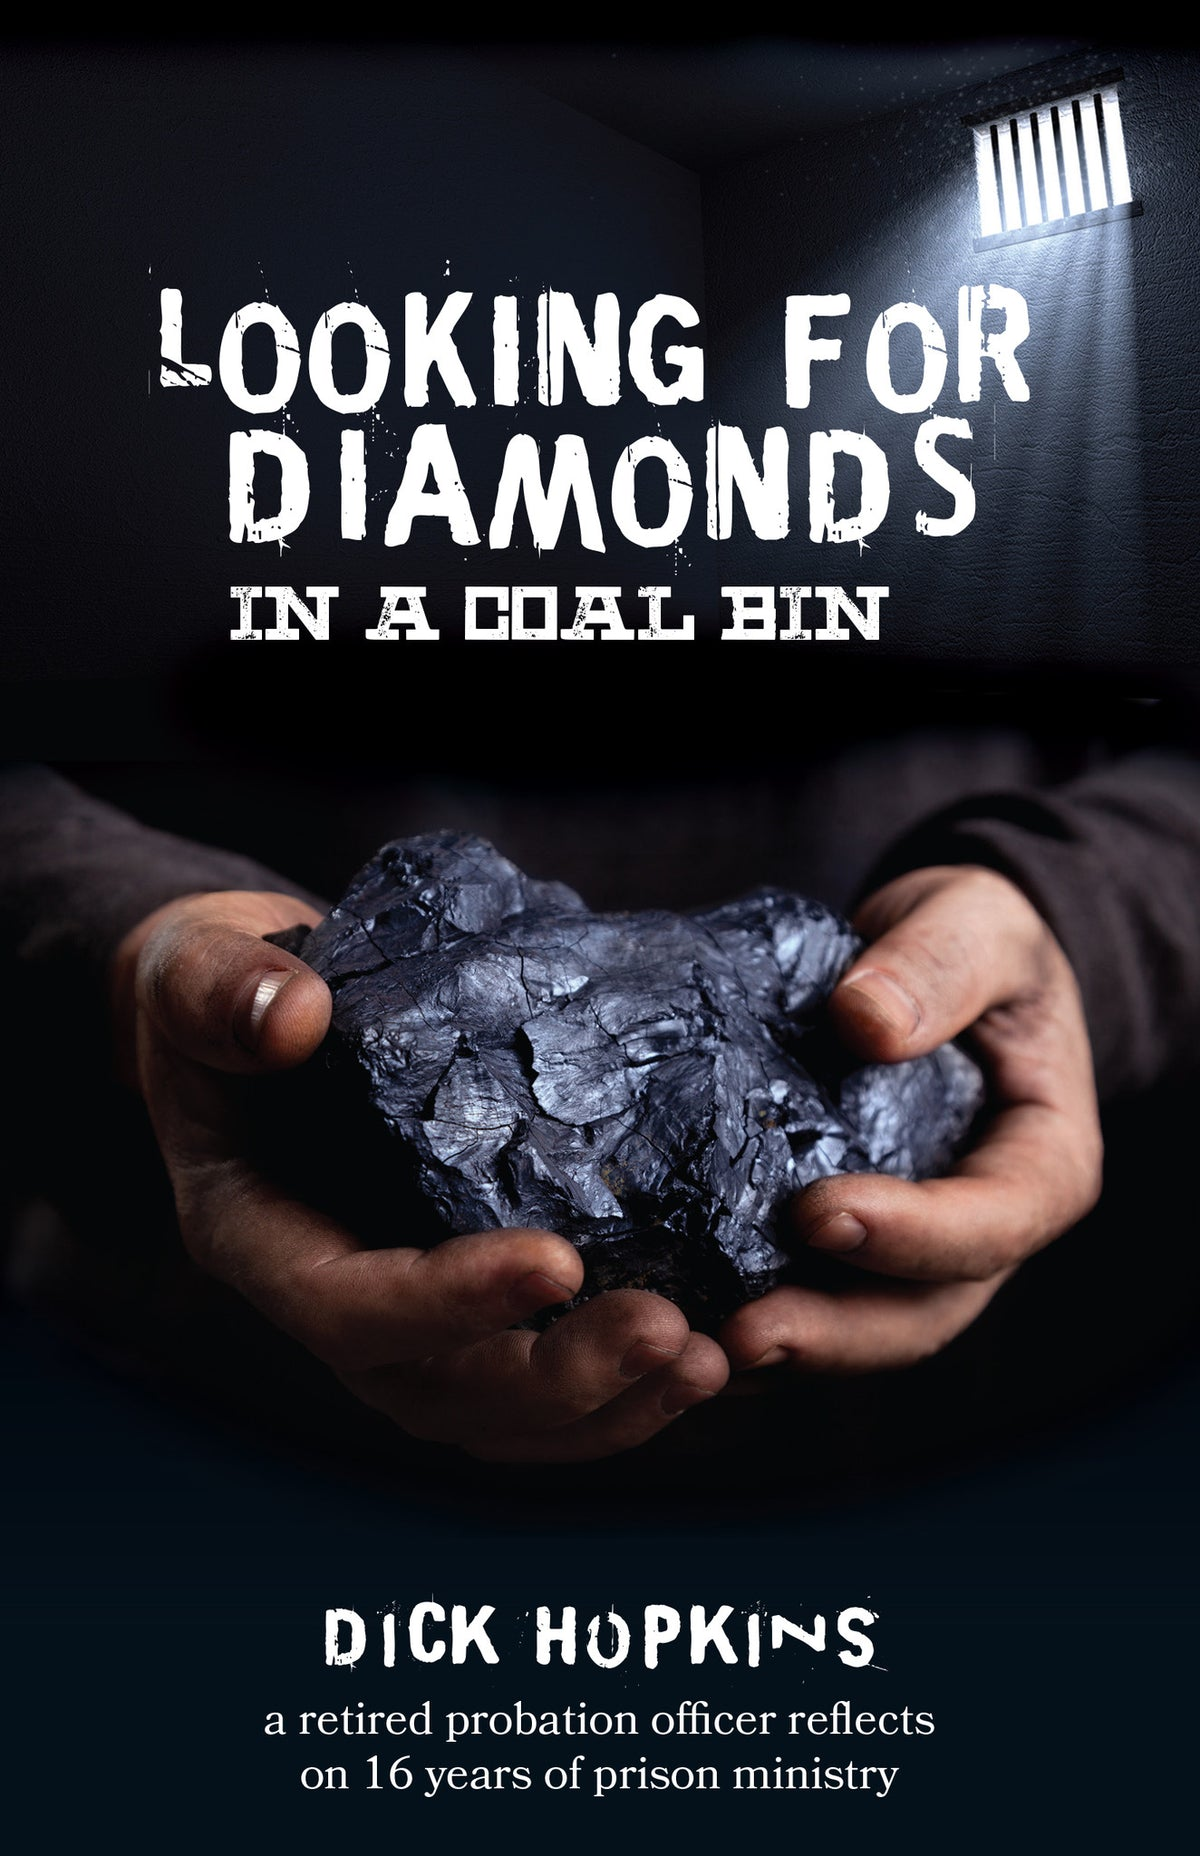 Looking for Diamonds in a Coal Bin